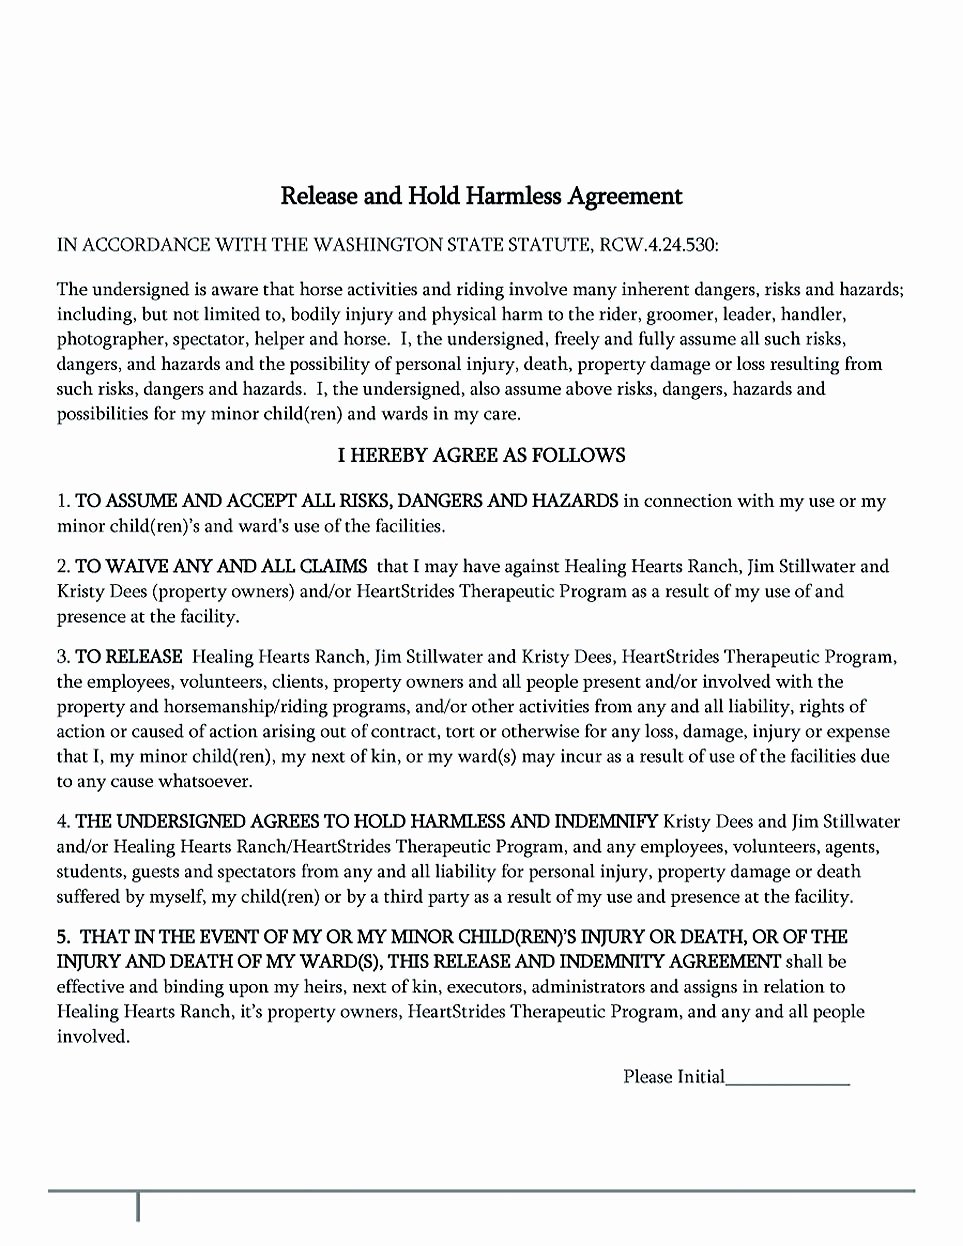 Hold Harmless Agreement Template Inspirational Making Hold Harmless Agreement Template for Different Purposes